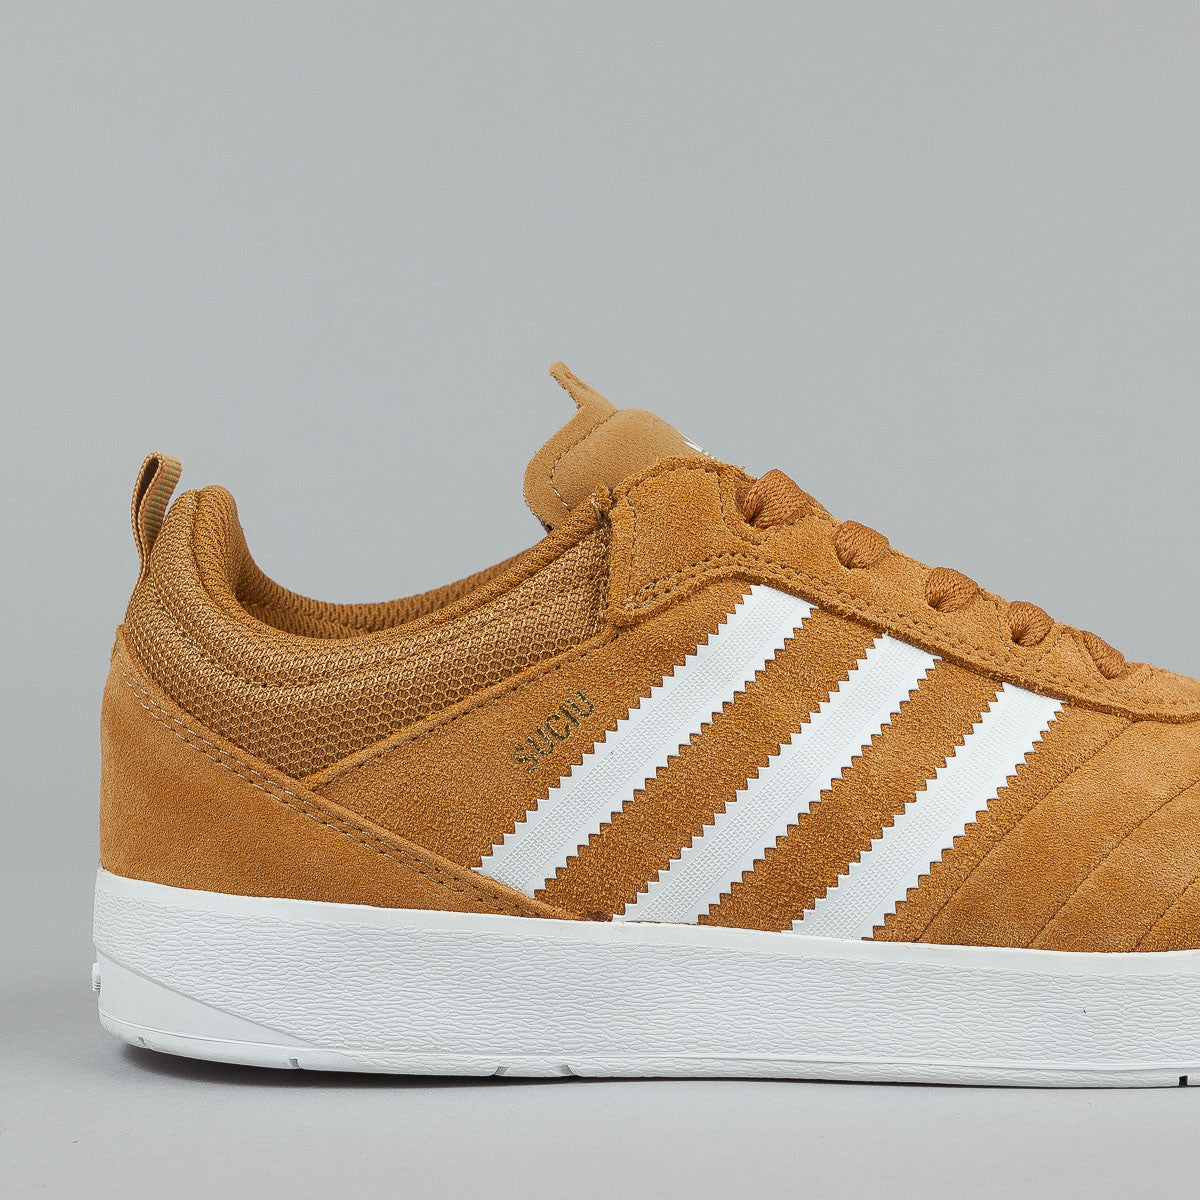 Adidas Suciu ADV Shoes - Mesa / FTWR White / Gold Metallic